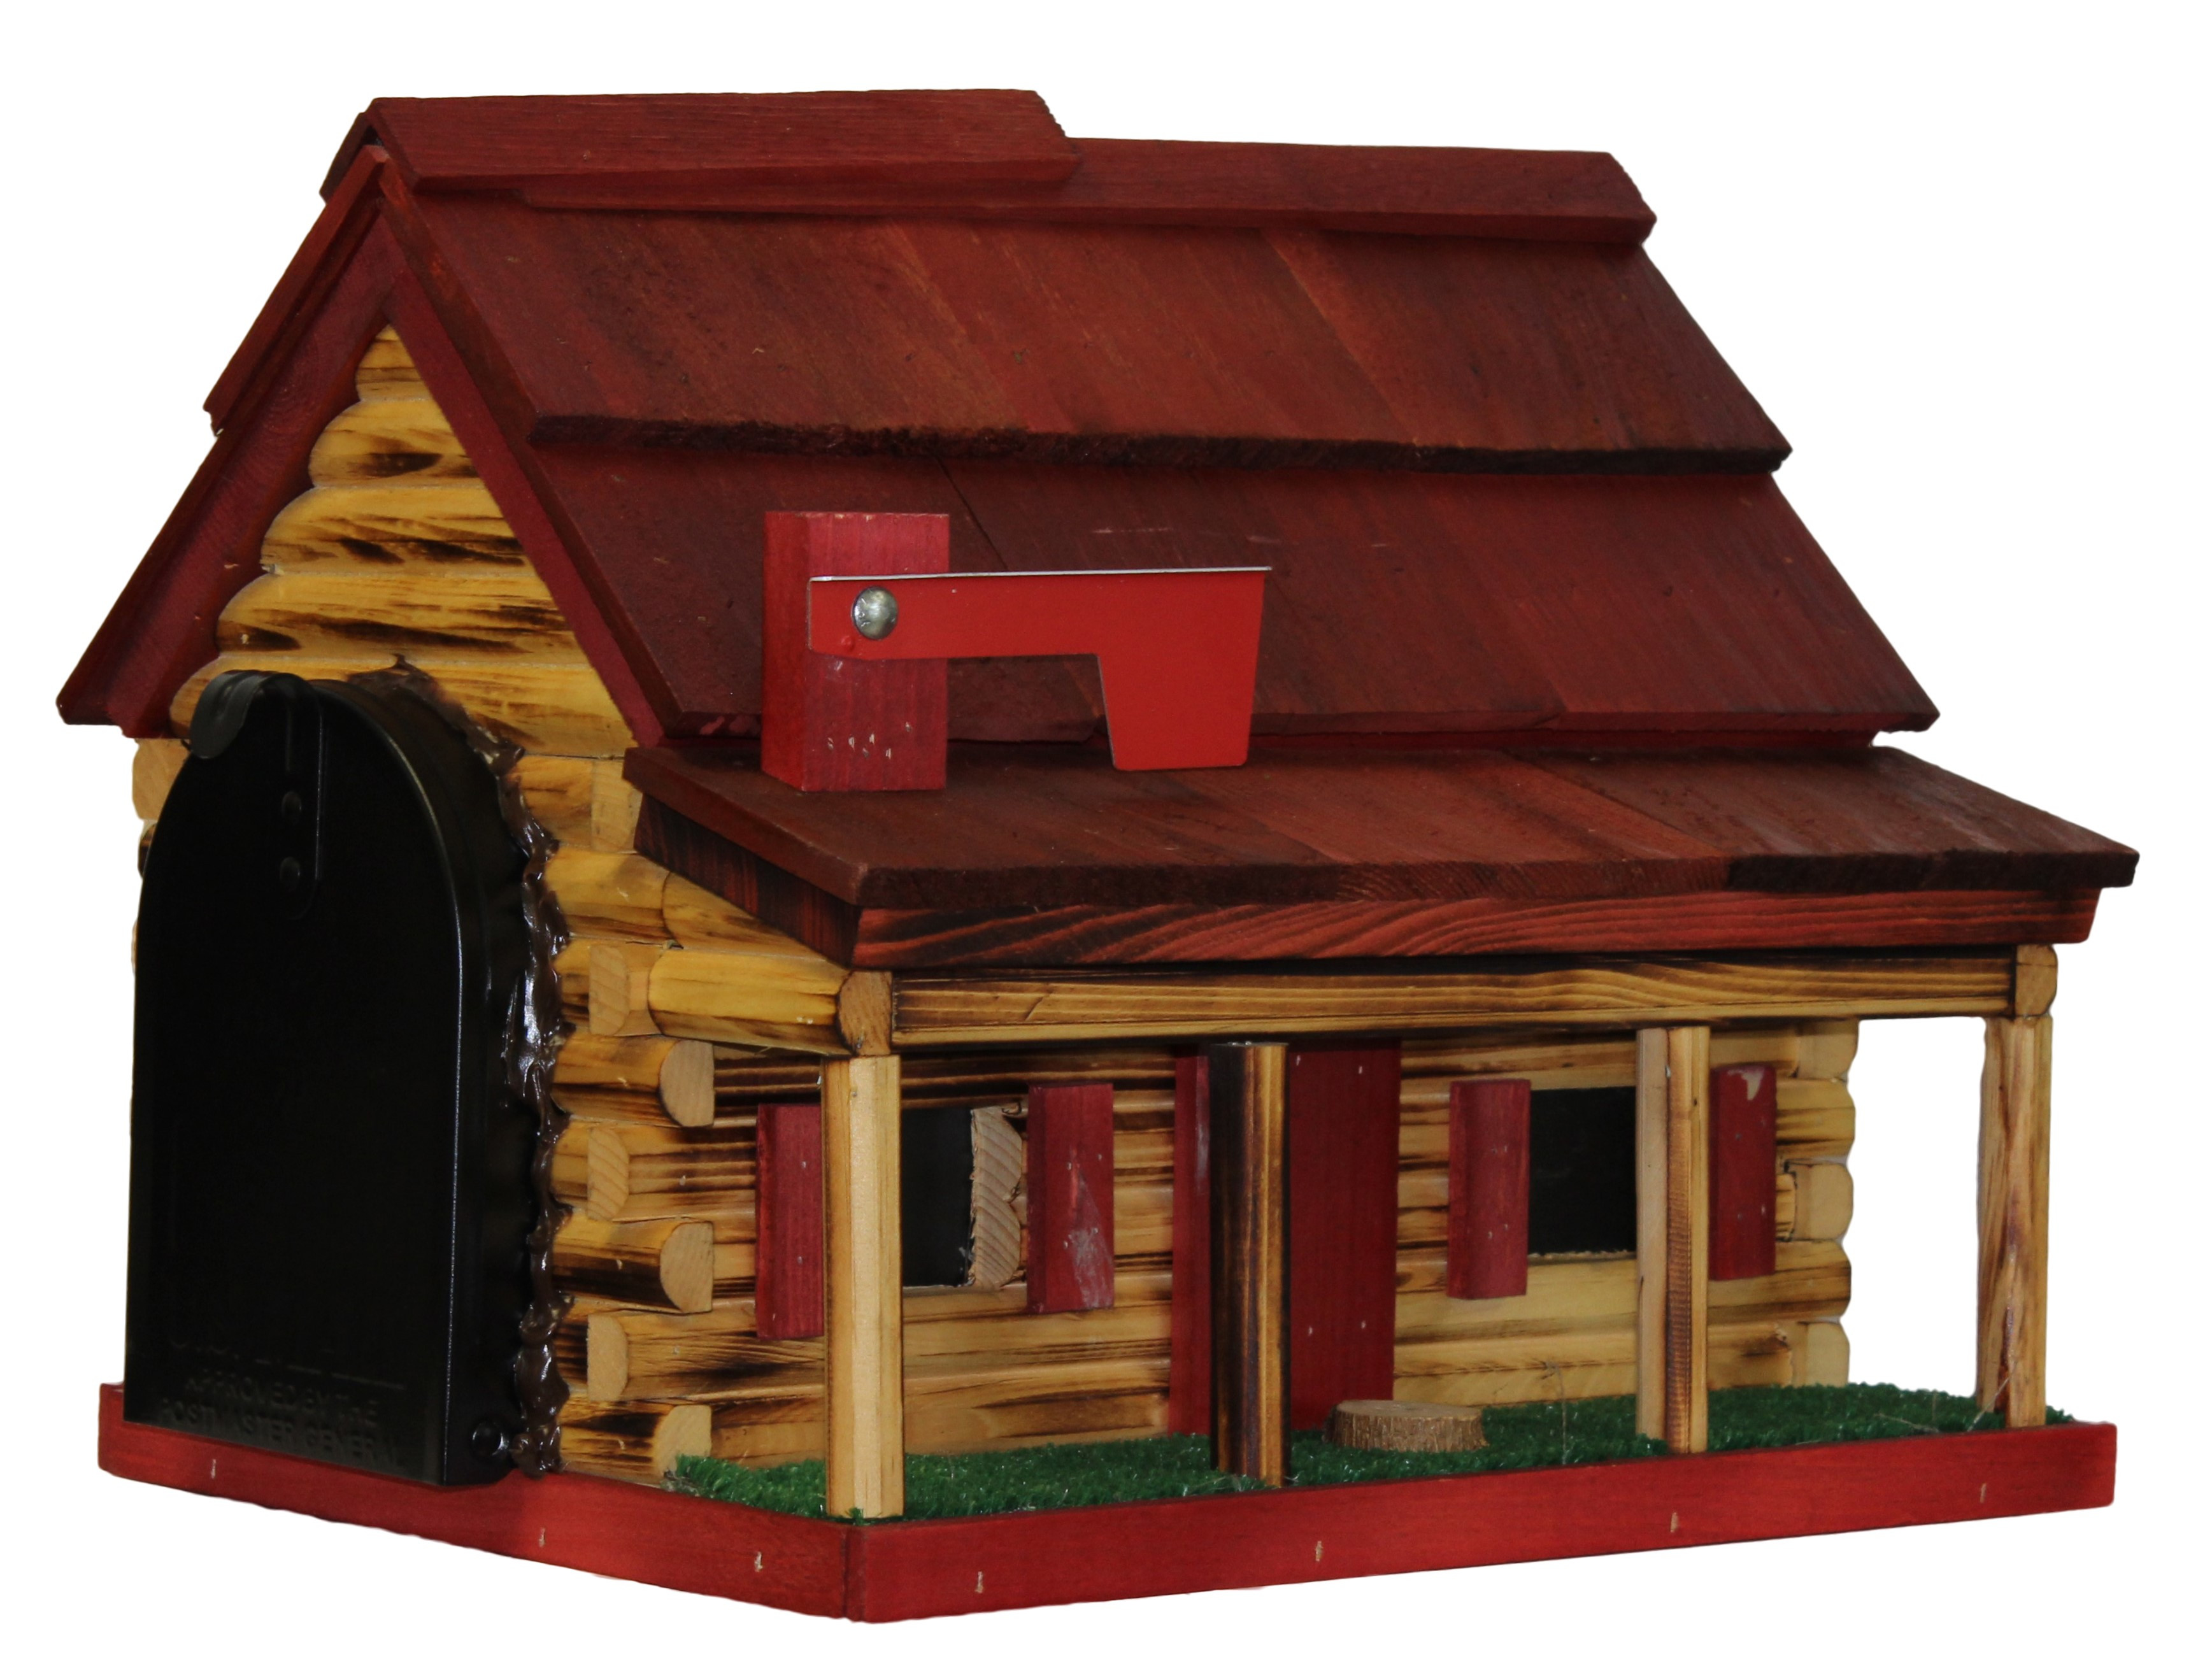 Log Cabin Mailbox - Red roof